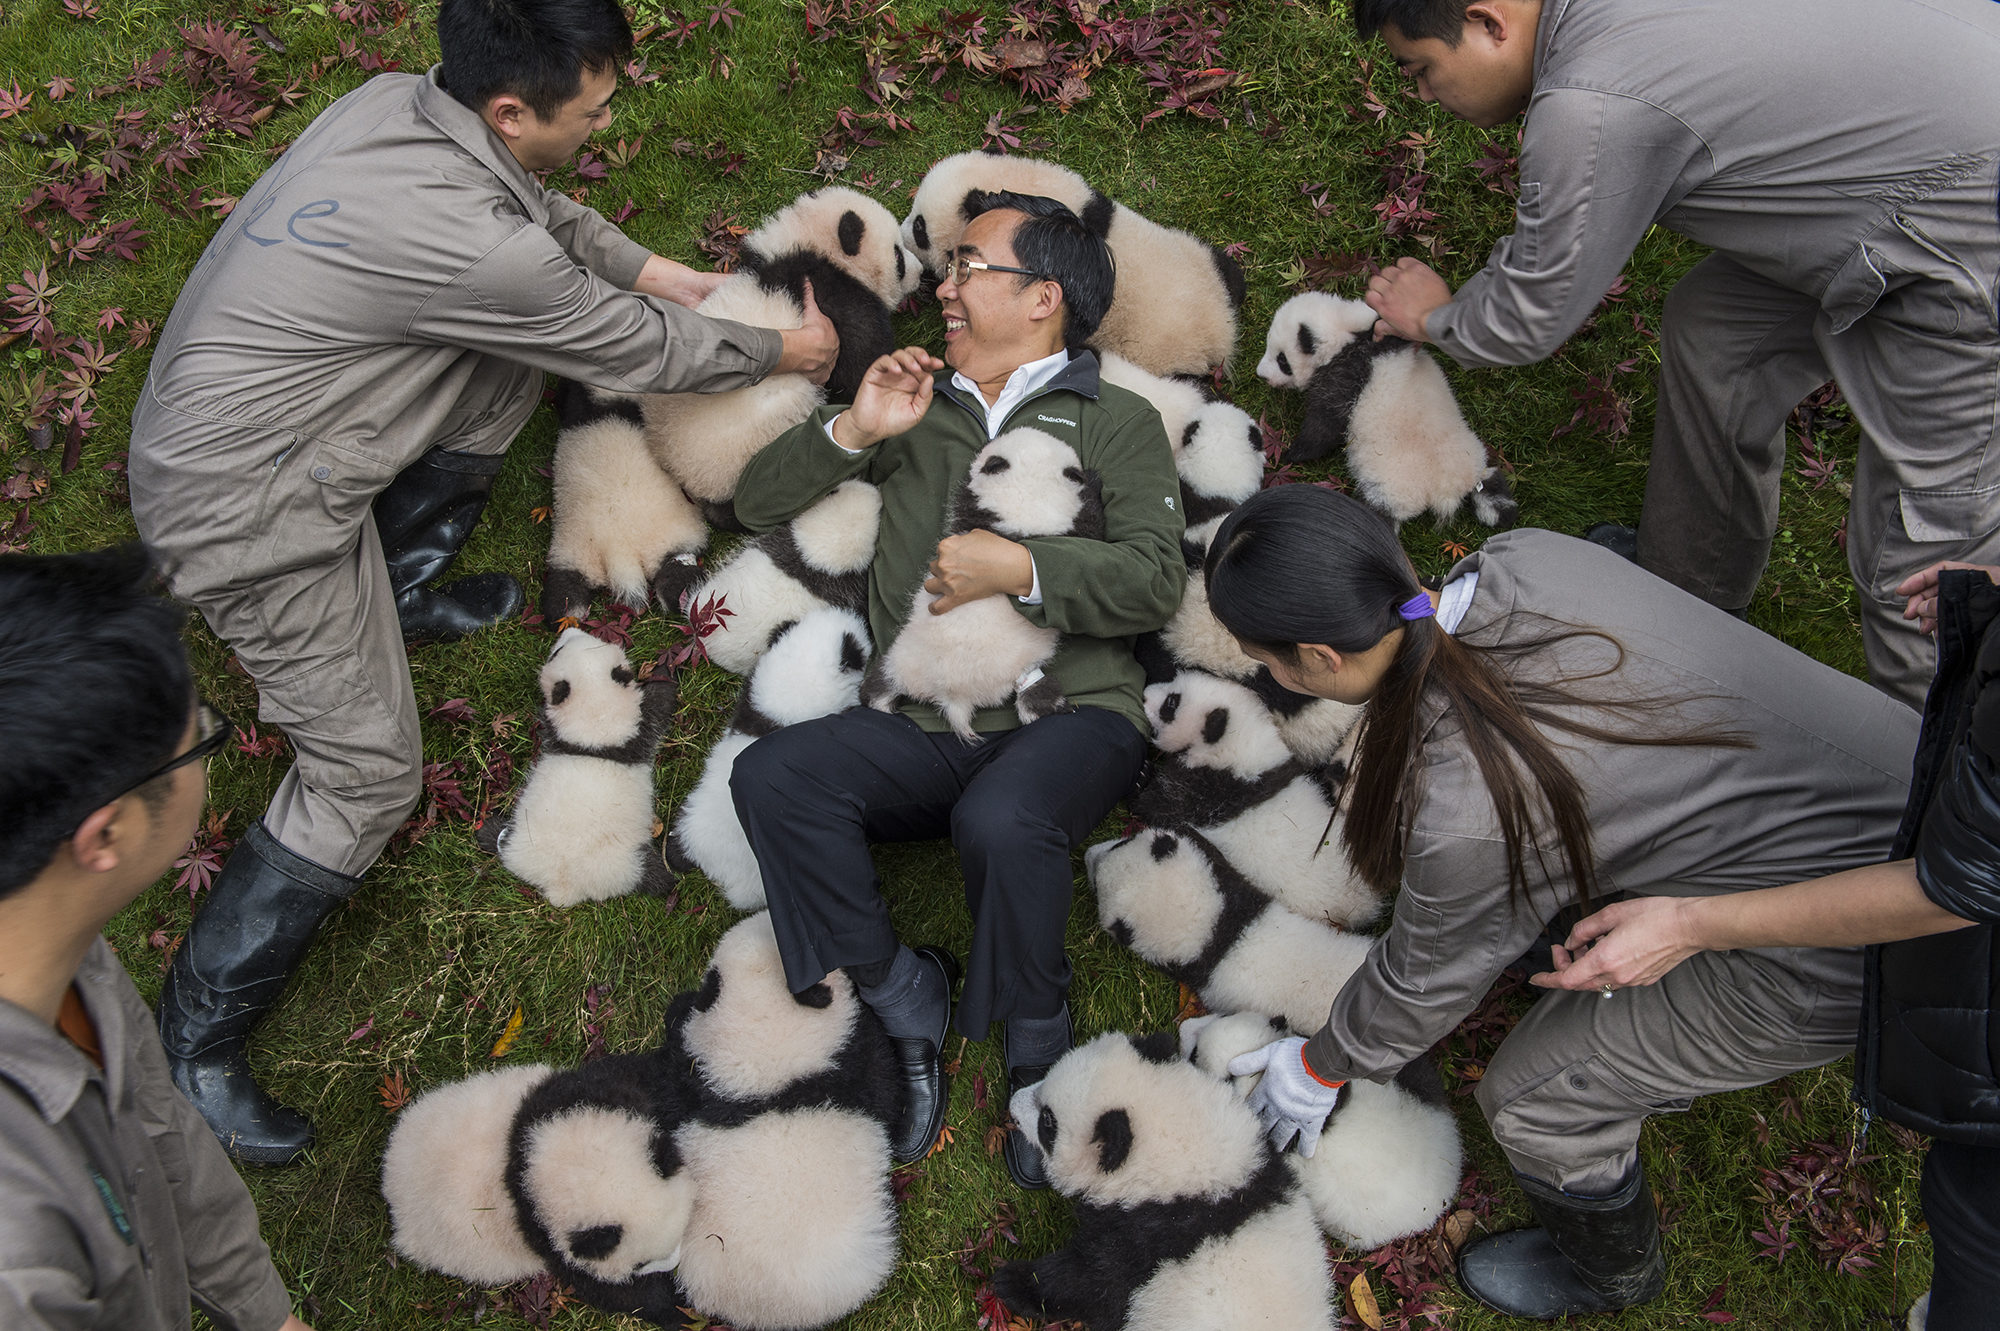 """Zhang Hemin—""""Papa Panda"""" to his staff—poses with cubs born in 2015 at Bifengxia Panda Base. """"Some local people say giant pandas have magic powers,"""" says Zhang, who directs many of China's panda conservation efforts. """"To me, they simply represent beauty and peace."""""""